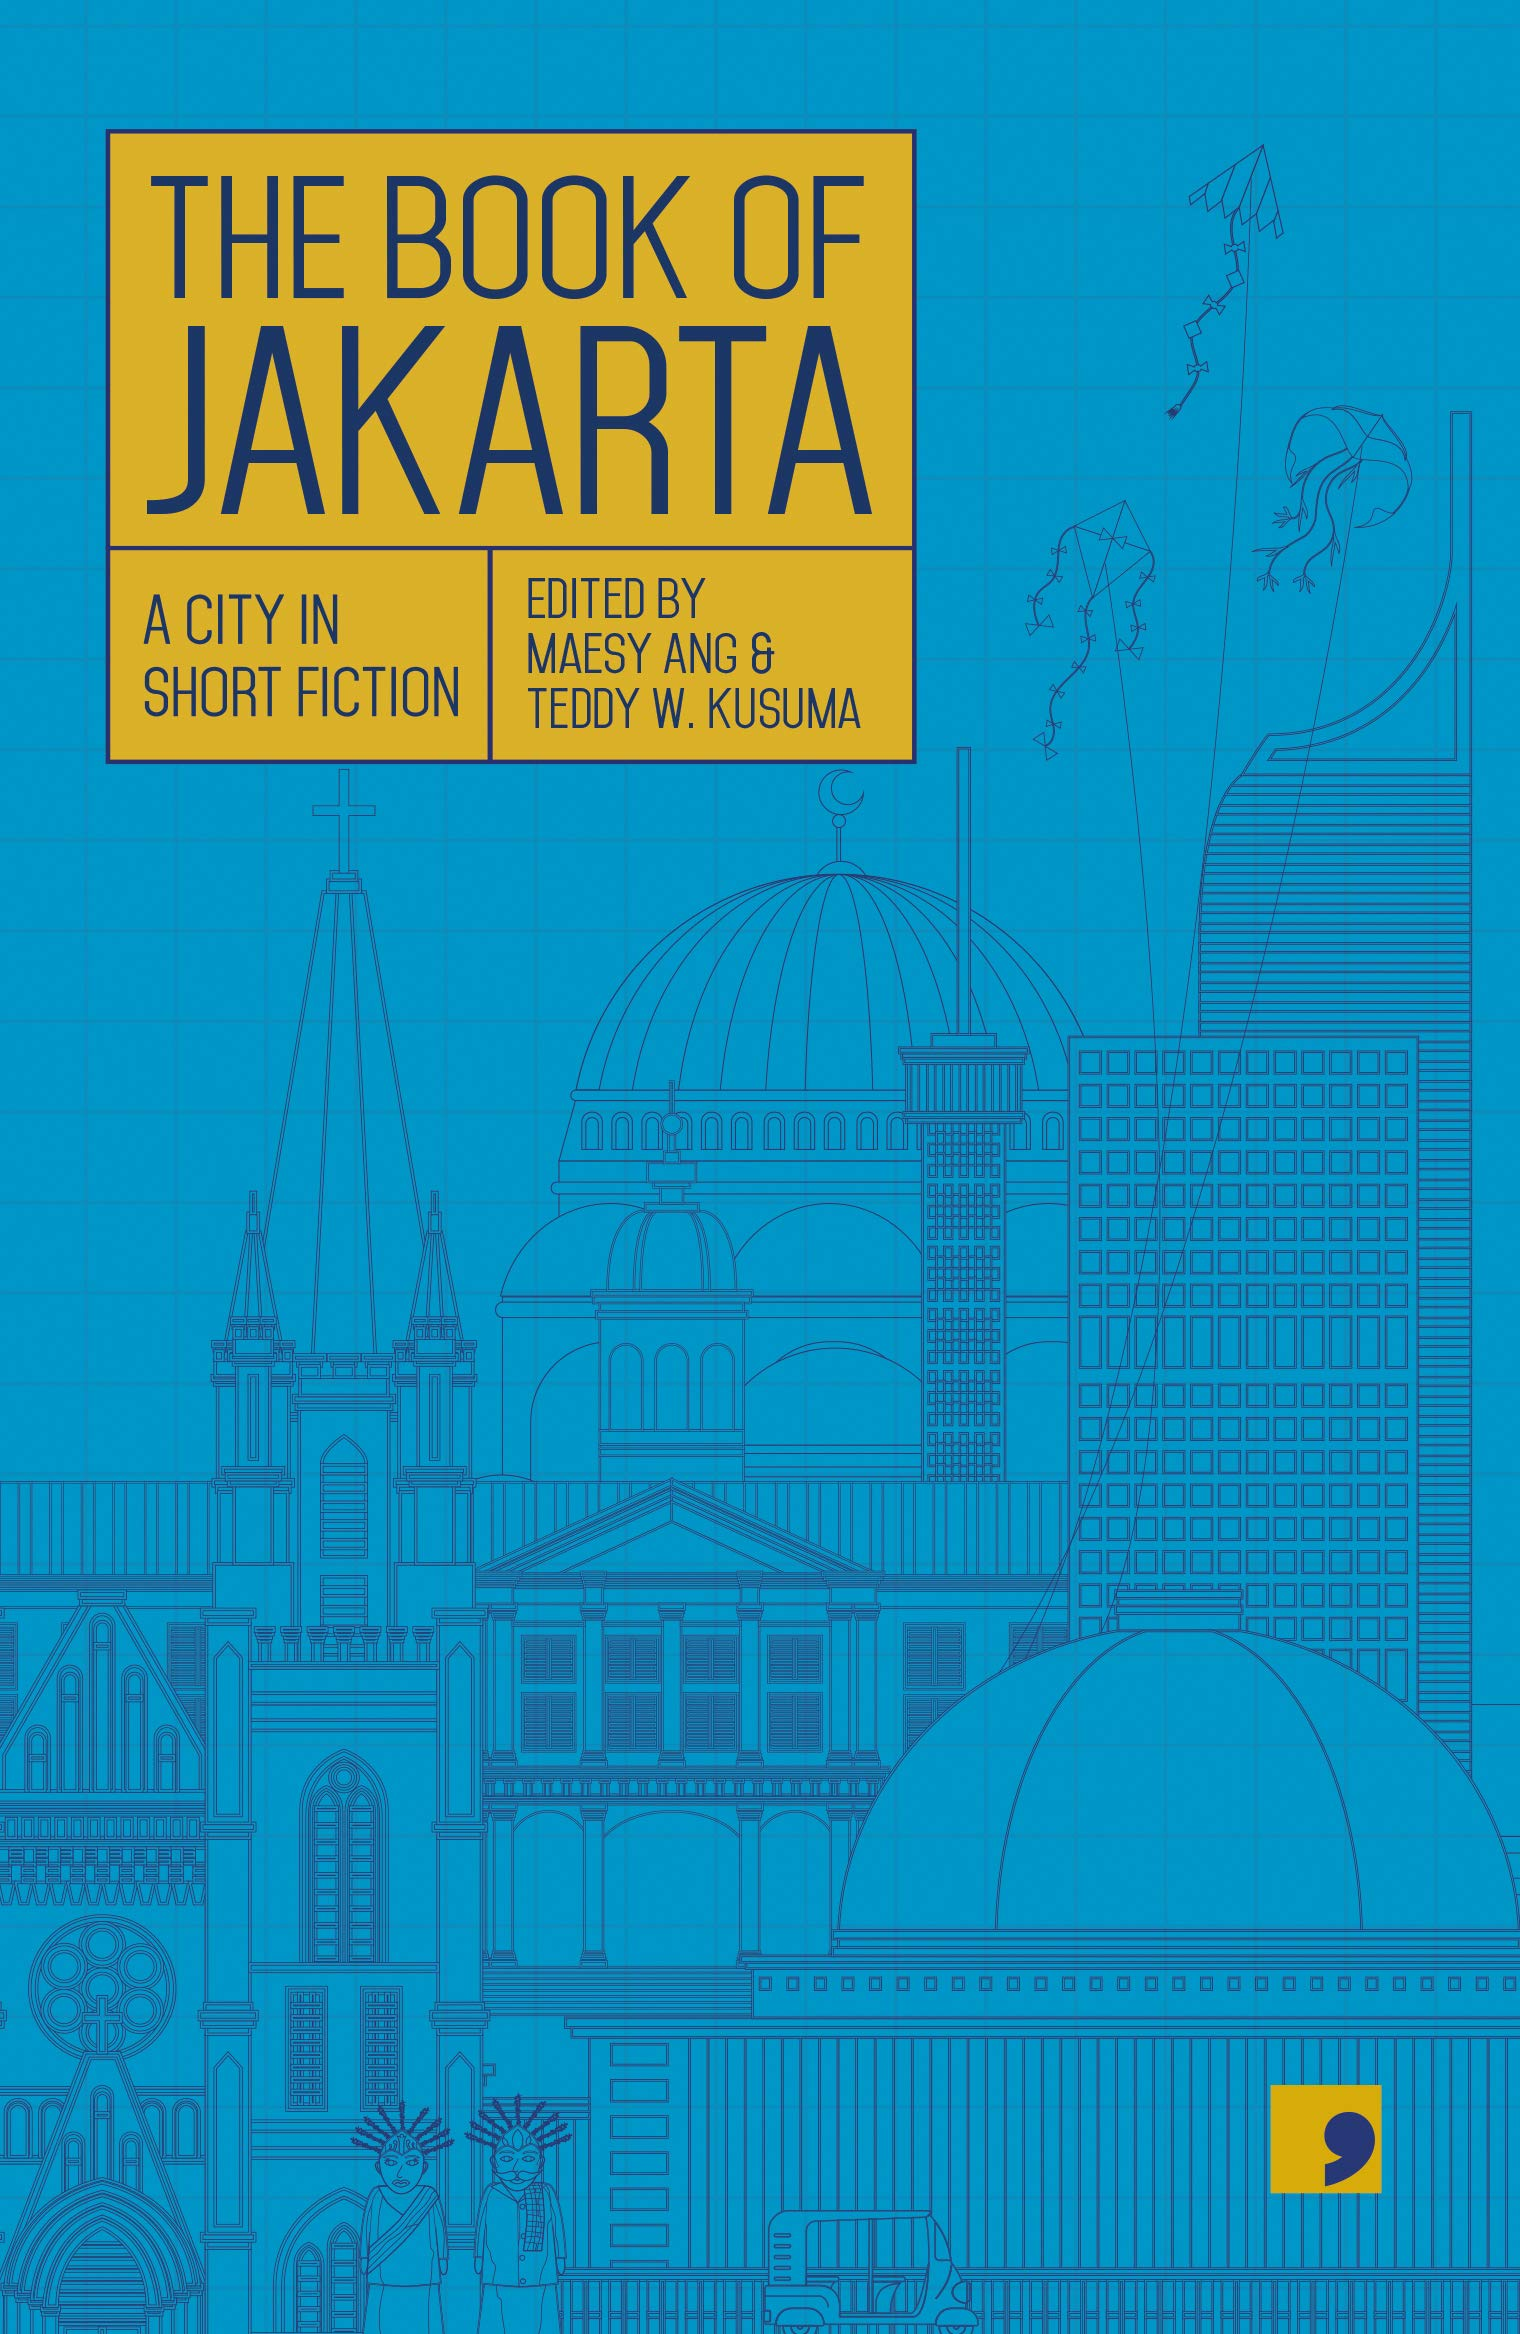 The Book of Jakarta: A City in Short Fiction